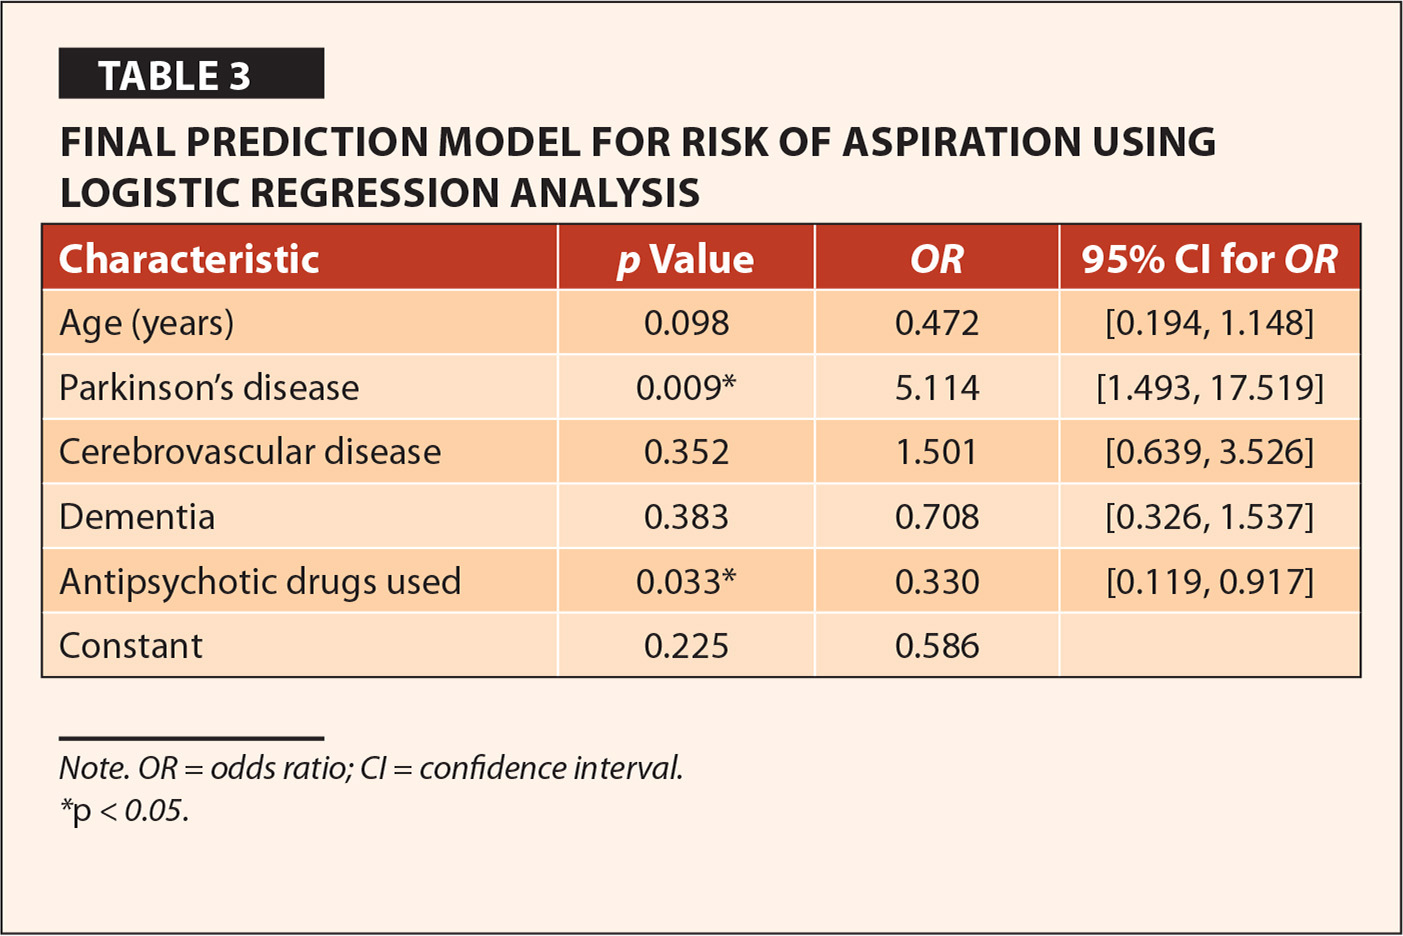 Final Prediction Model for Risk of Aspiration Using Logistic Regression Analysis